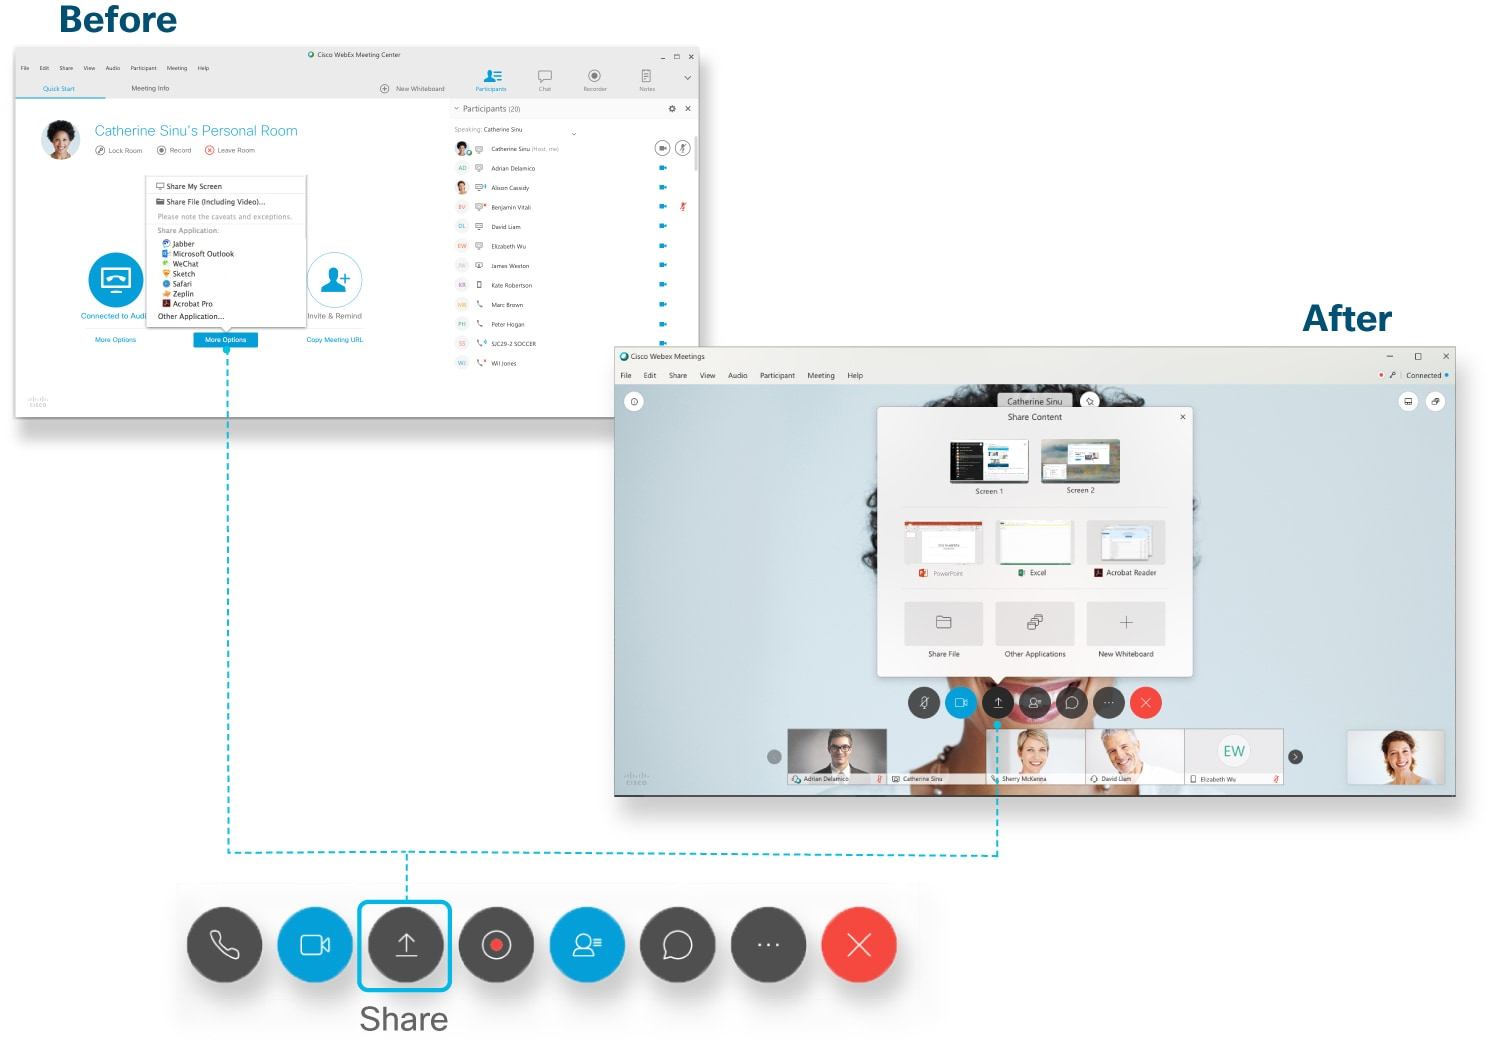 Share Content in Cisco Webex Meetings and Cisco Webex Events